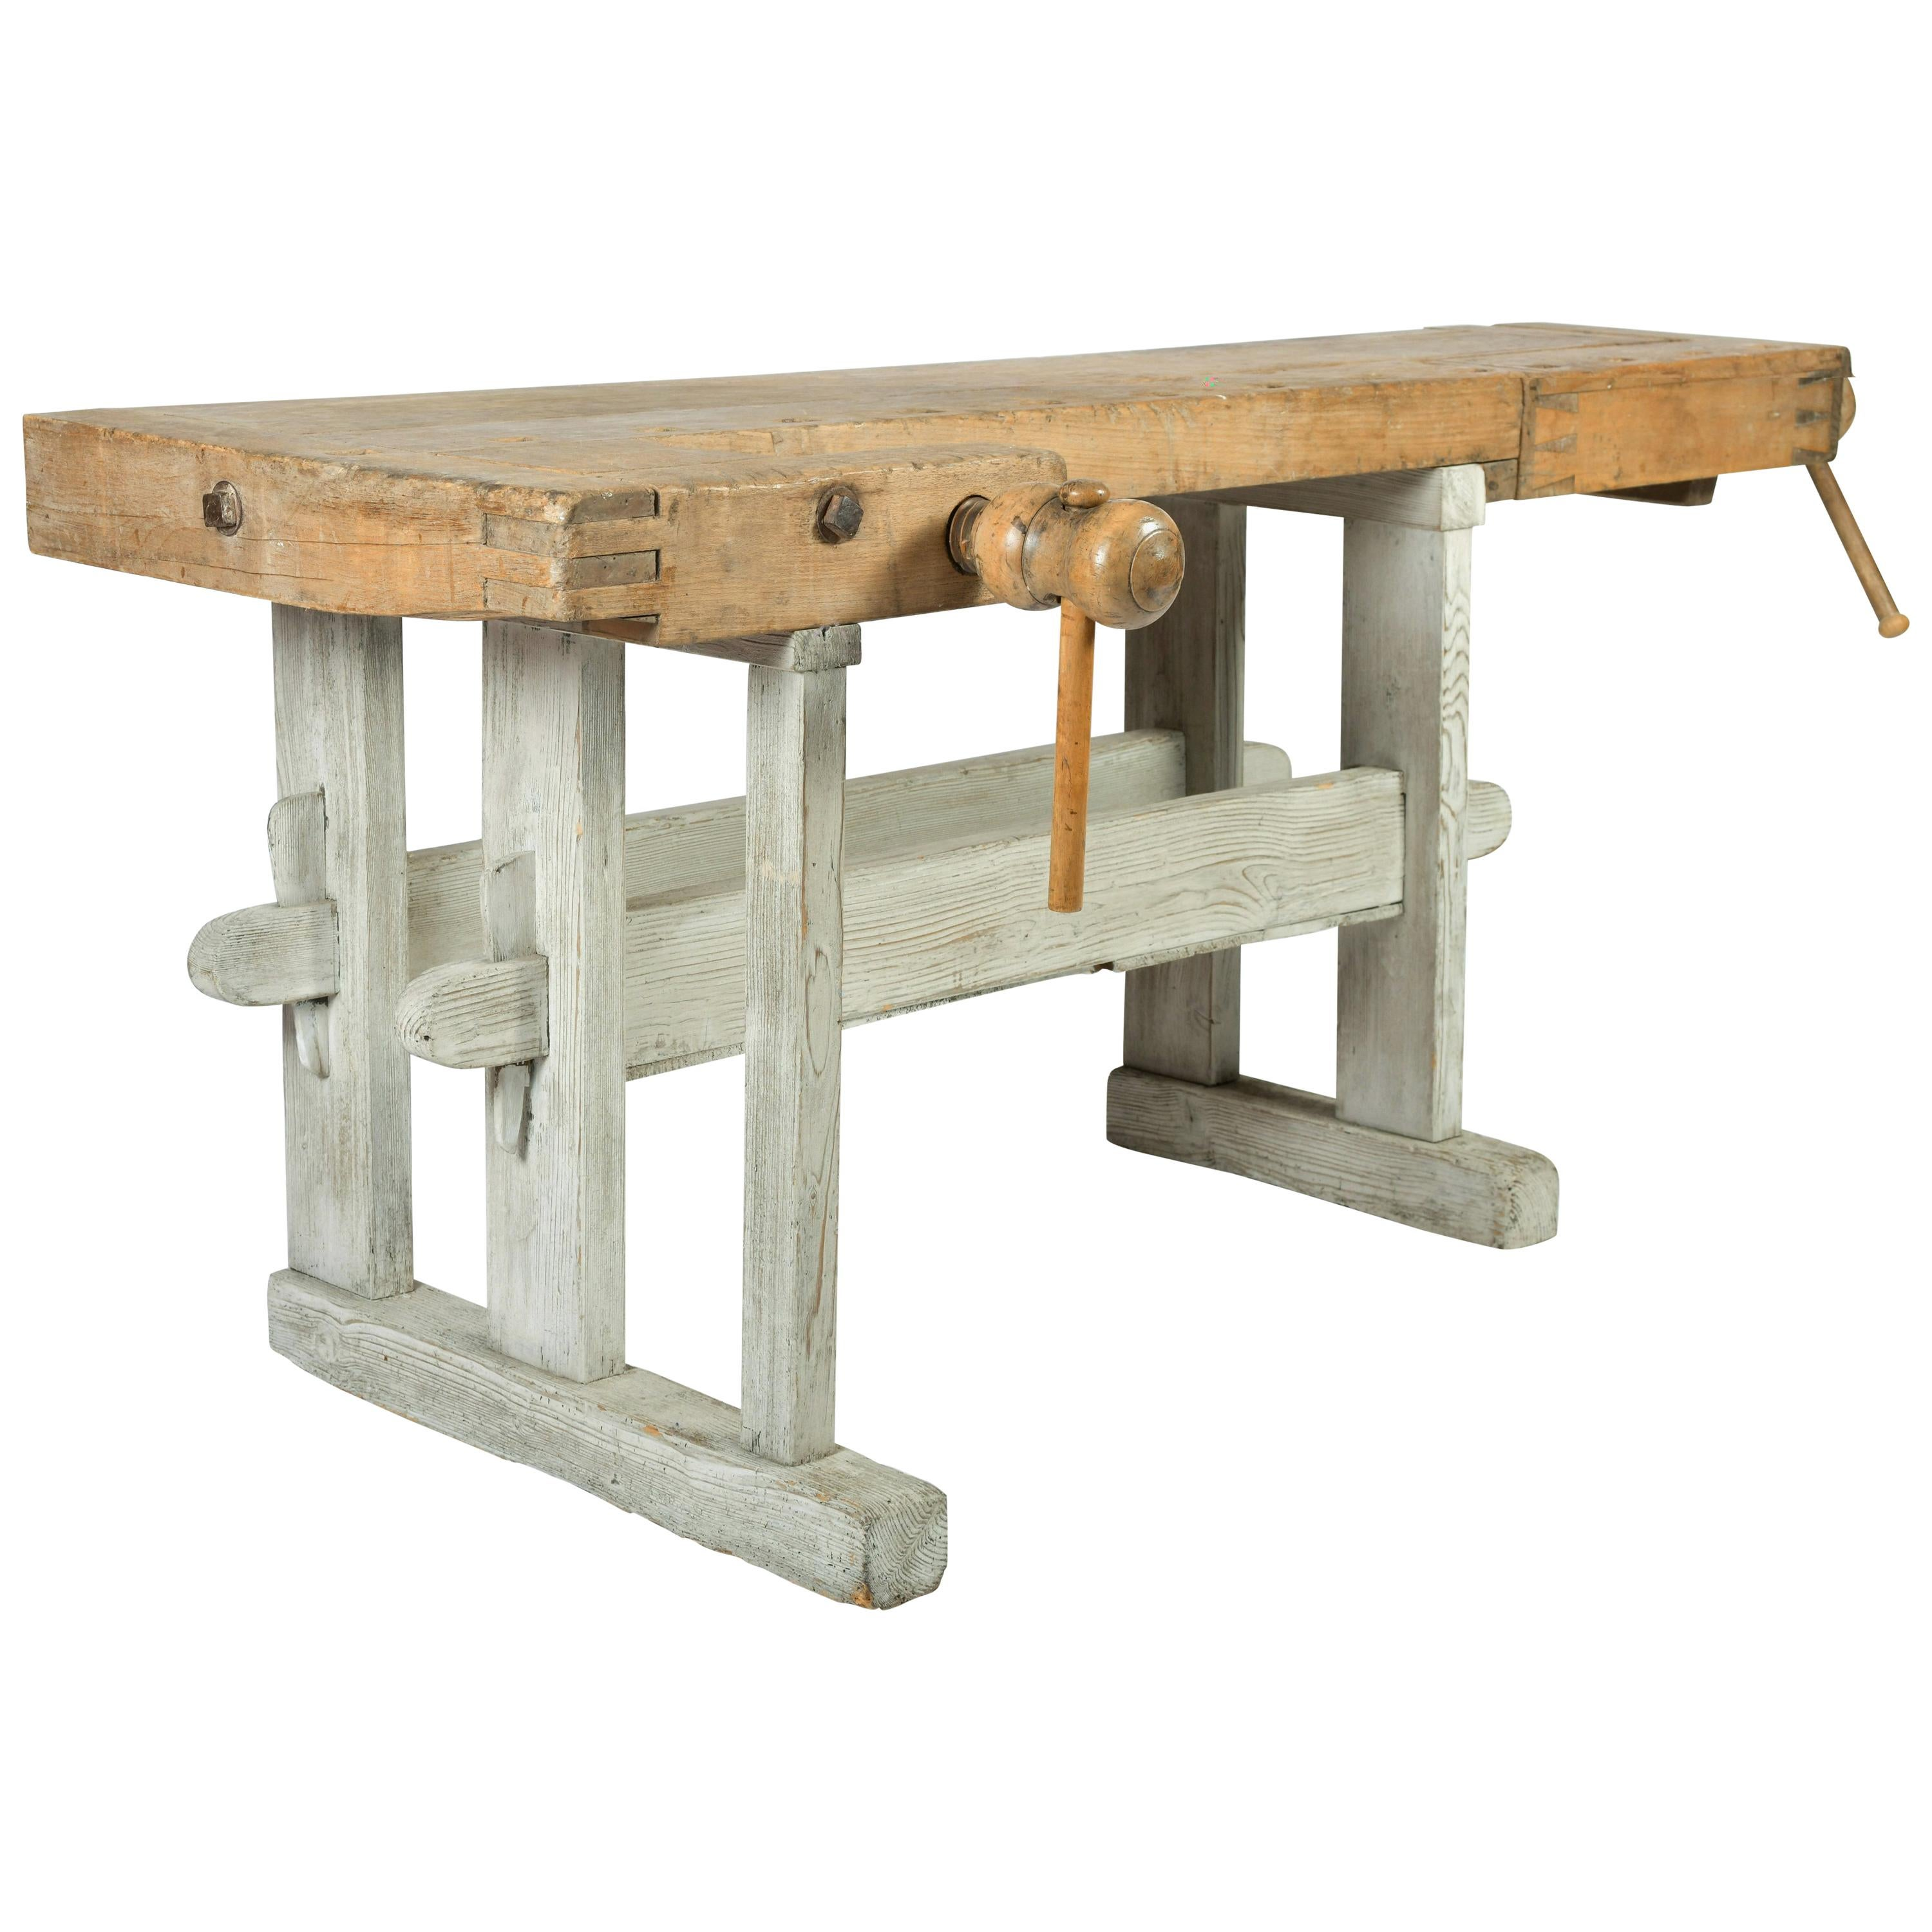 Antique Workbenches 110 For Sale On 1stdibs